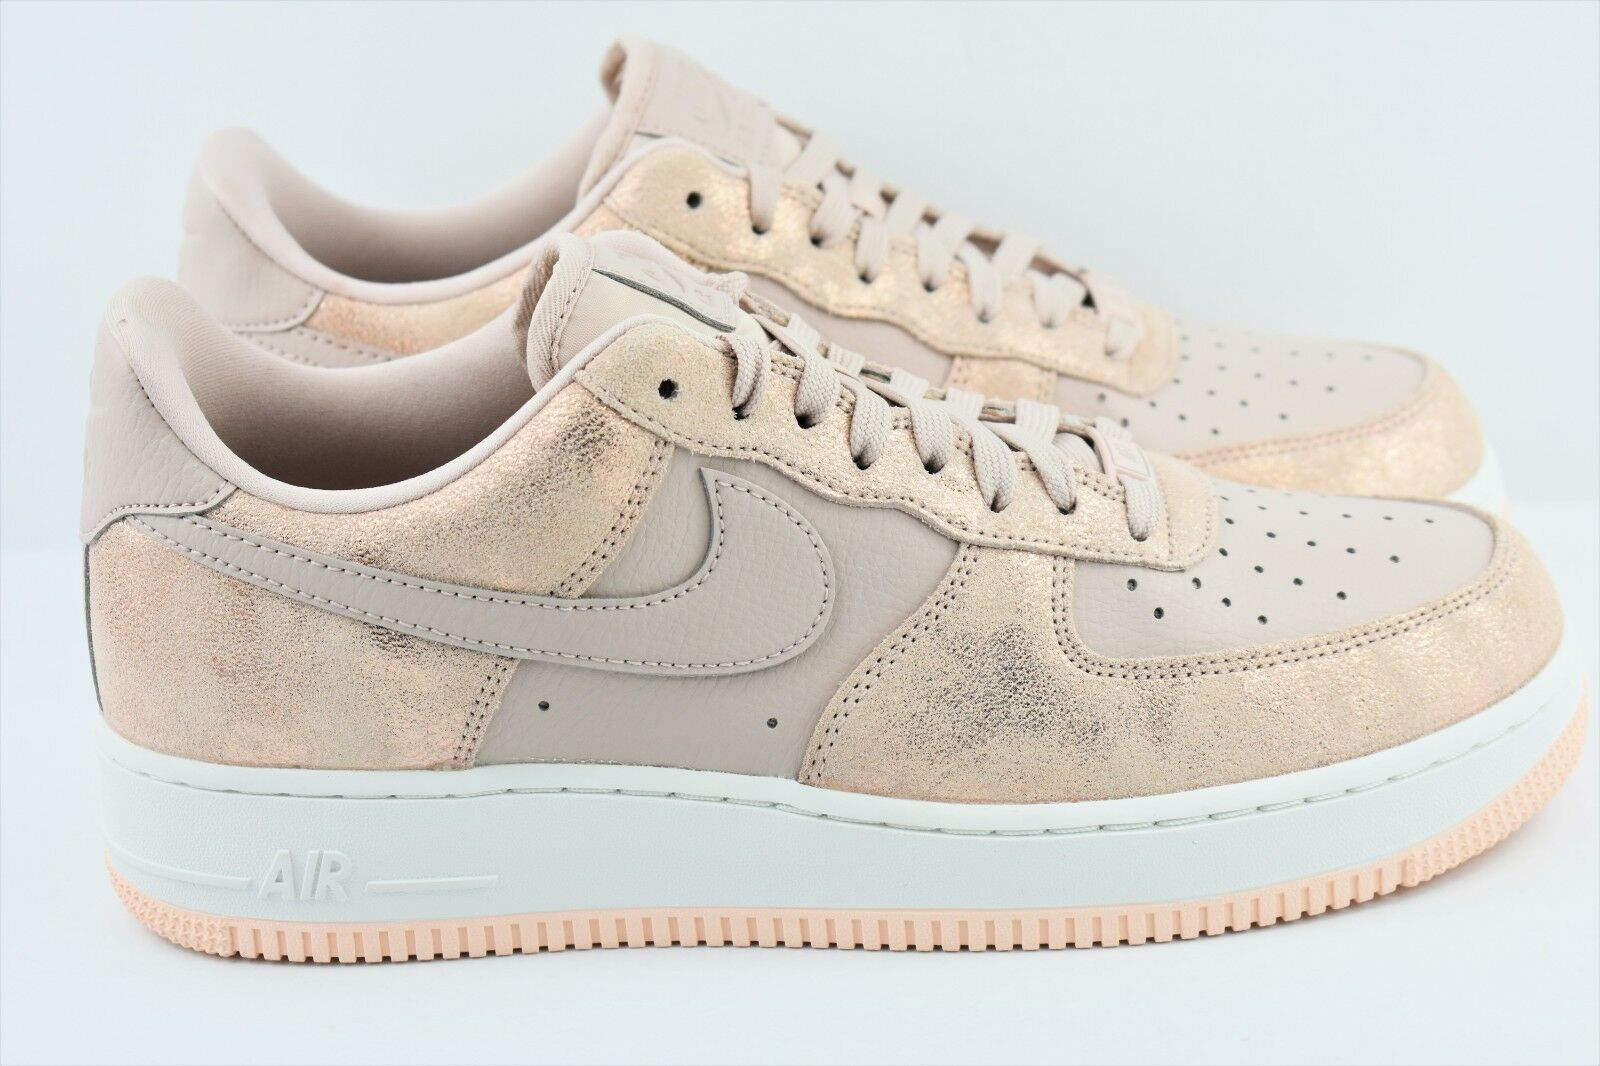 Womens Nike Air Force 1 '07 PRM Size 9.5 Shoes AF1 Metallic Bronze 616725 901